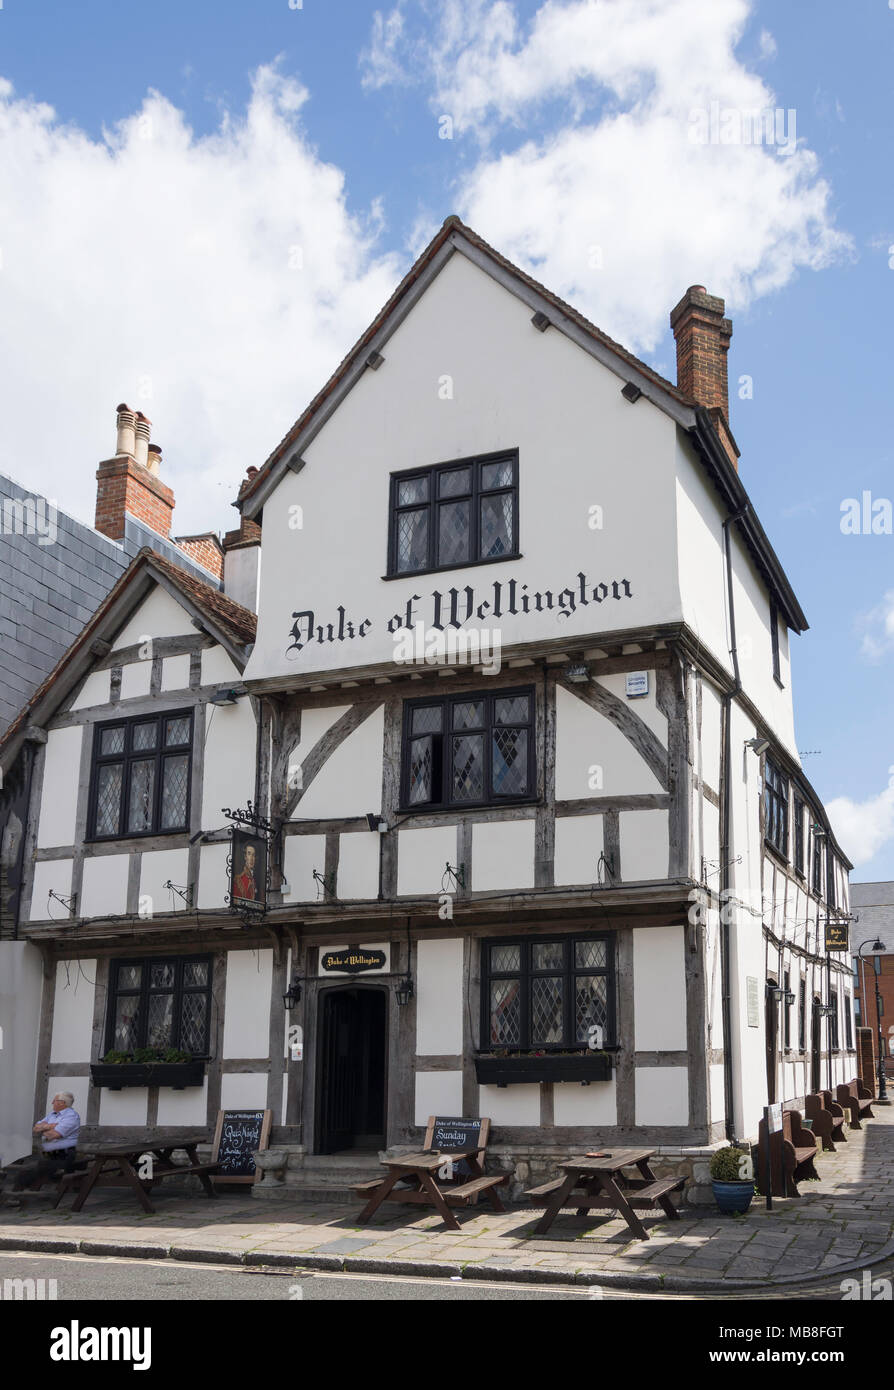 13th century Duke of Wellington Pub, Bugle Street, Old City, Southampton, Hampshire, England, United Kingdom - Stock Image